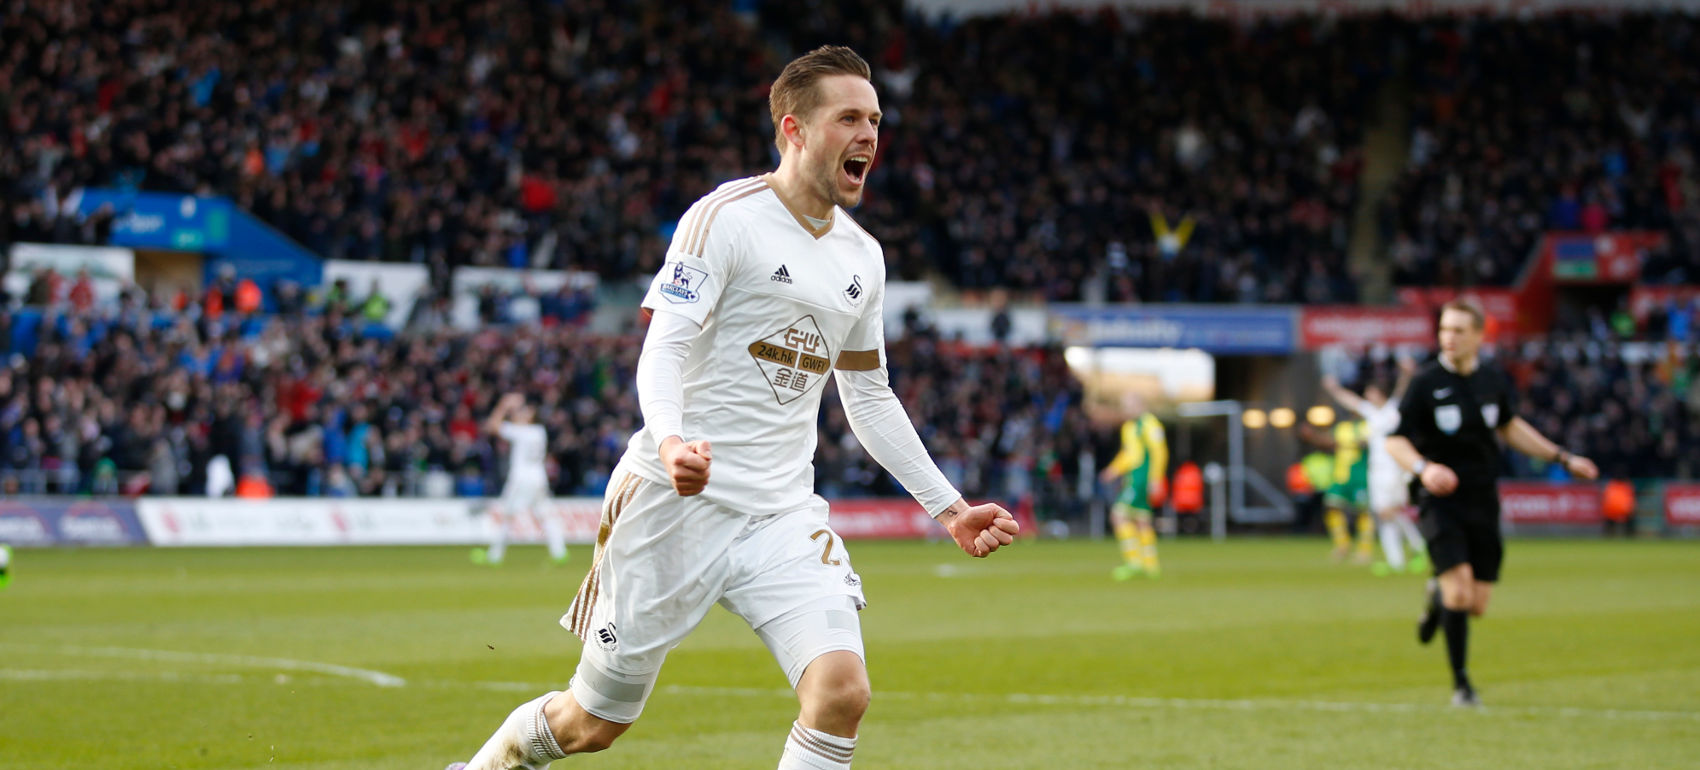 → January transfer window signing Gylfi Sigurdsson scored five goals and assisted a further seven in just 18 appearances for Swansea City. What was his bargain starting price?